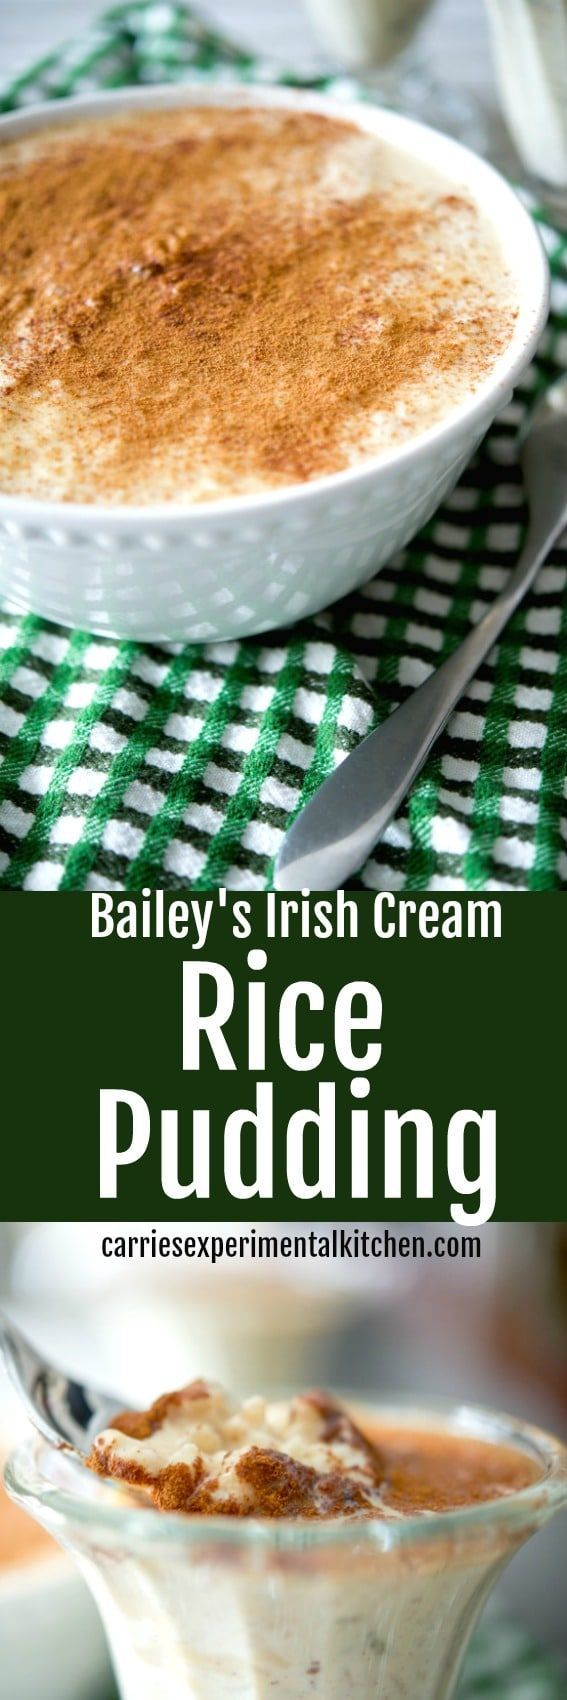 Bailey's Irish Cream Rice Pudding has a deliciously creamy, nutty flavor and makes a tasty dessert the entire family will love. #dessert #pudding #rice #sweets #irish